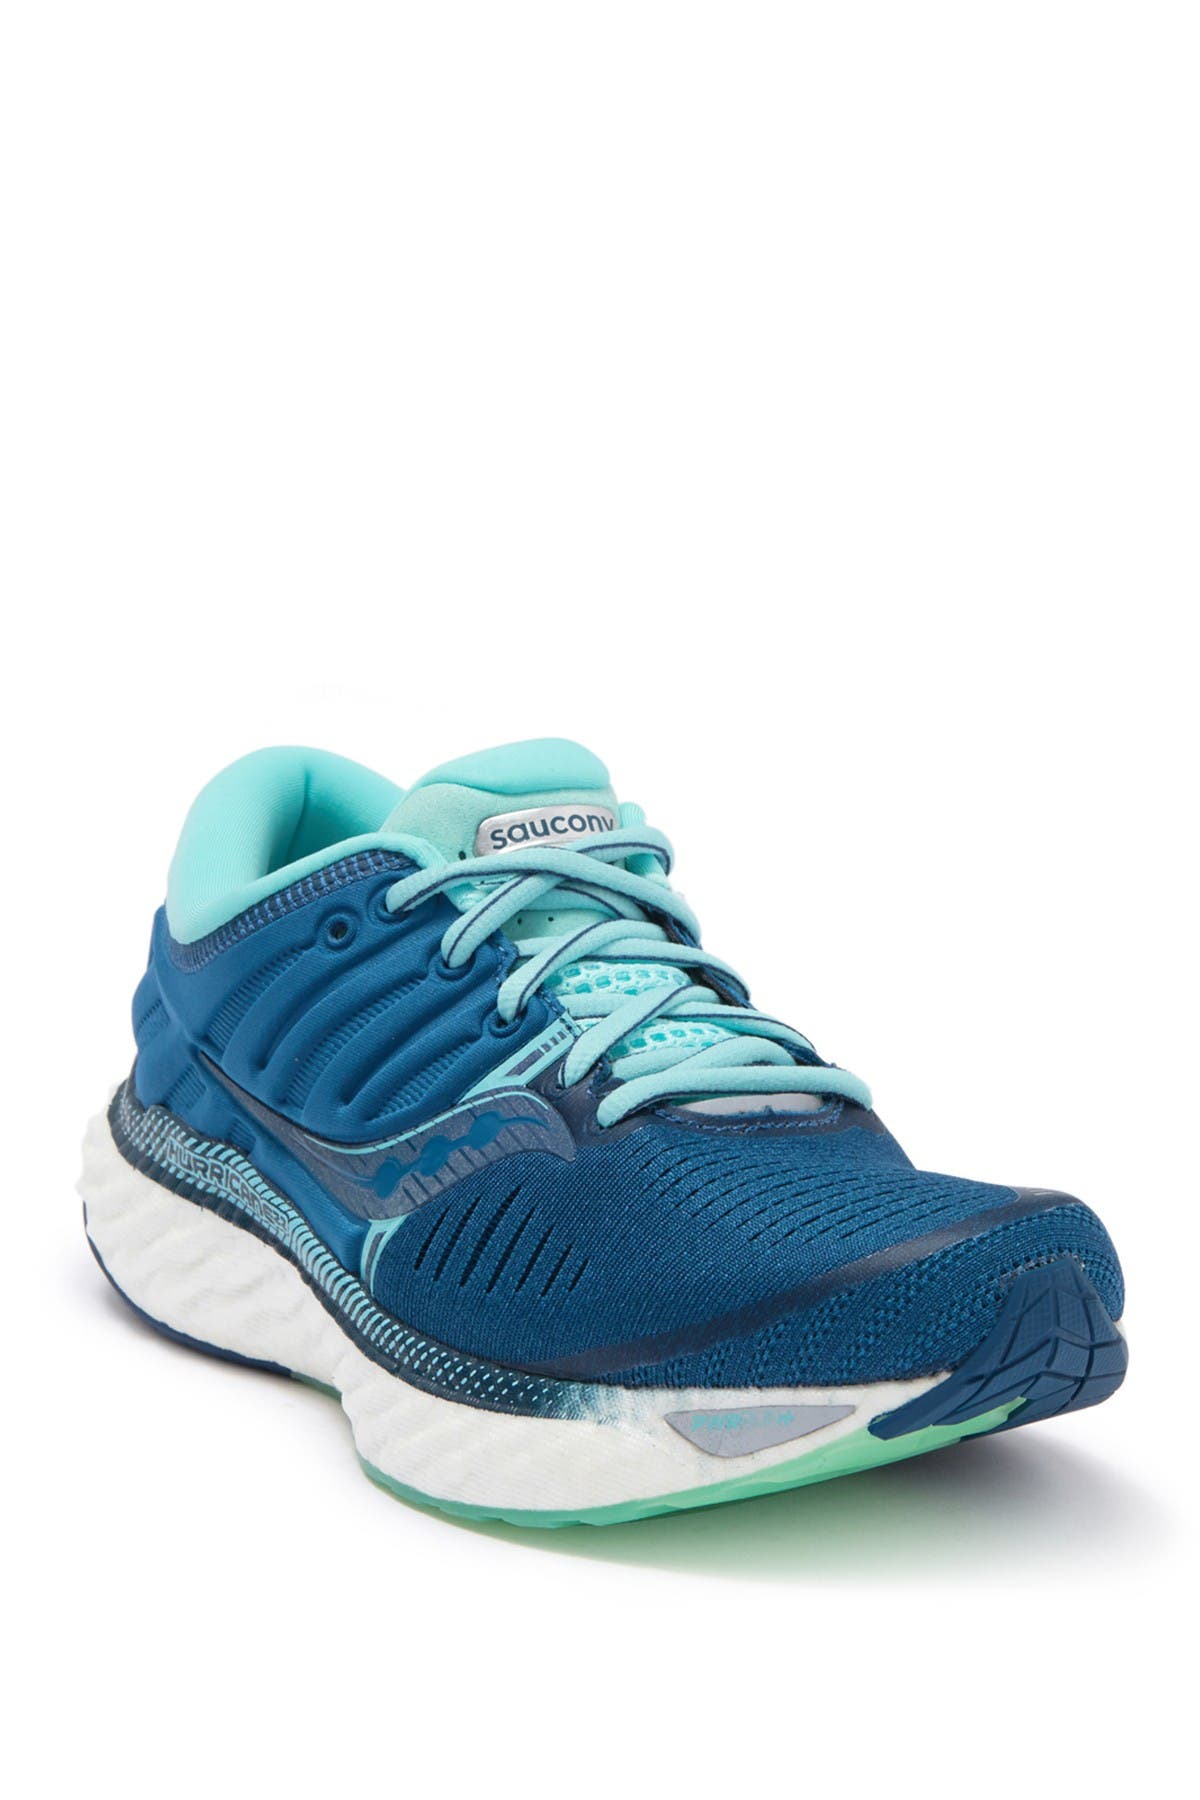 Image of Saucony Guide 13 Running Sneaker